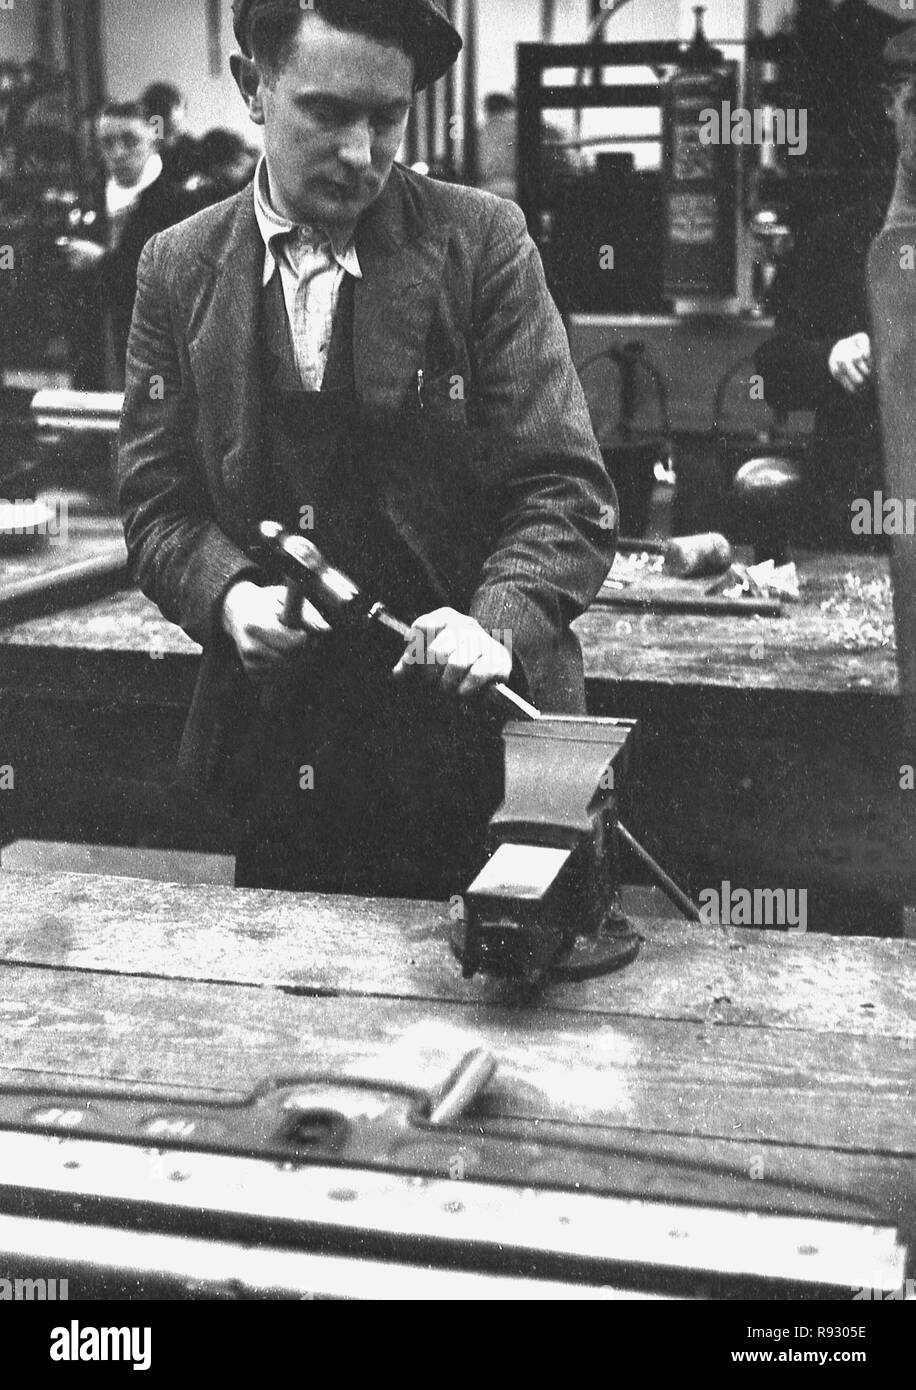 1940s, historical, inside a workshop, at a workbench, an unemployed Welsh miner trying out a new skill, metalwork, Merthyr, Wales. - Stock Image